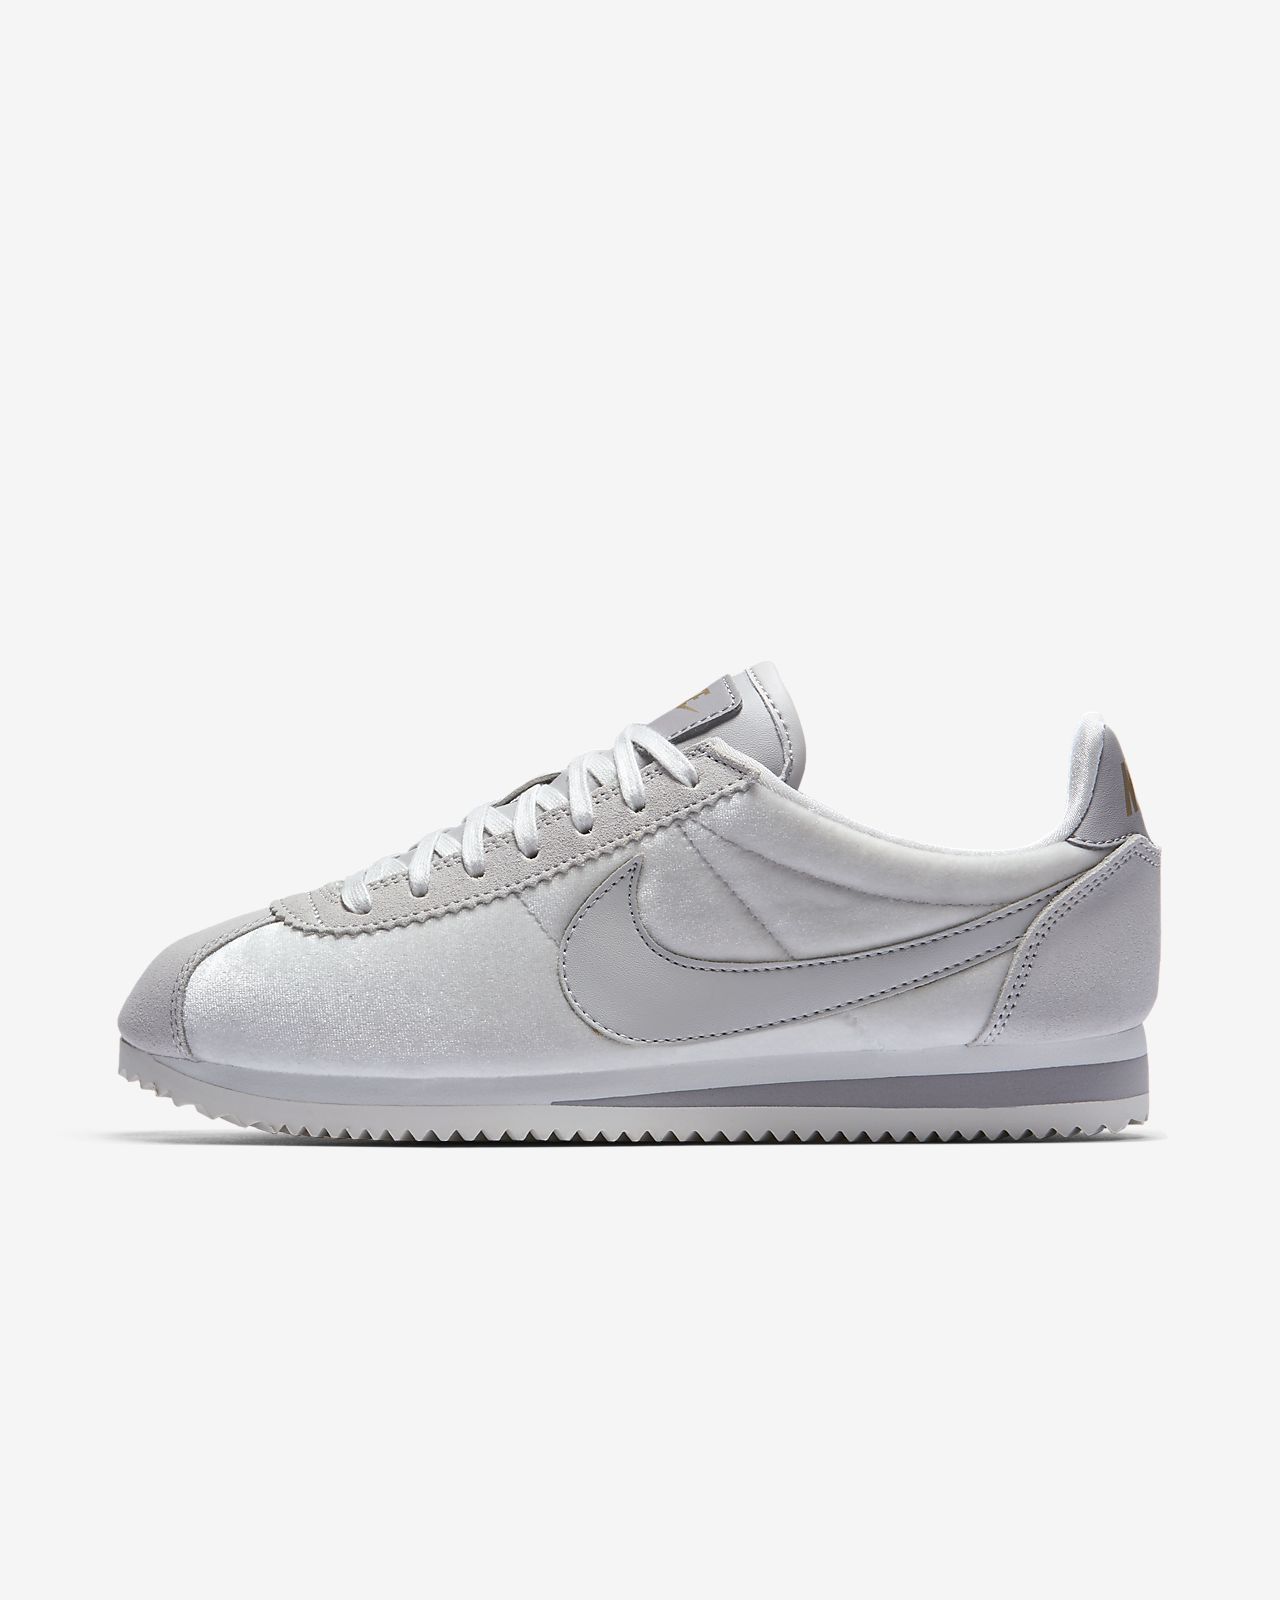 NIKE WOMEN'S CORTEZ SE VAST GREY VAST GREY METALLIC GOLD 902856-011